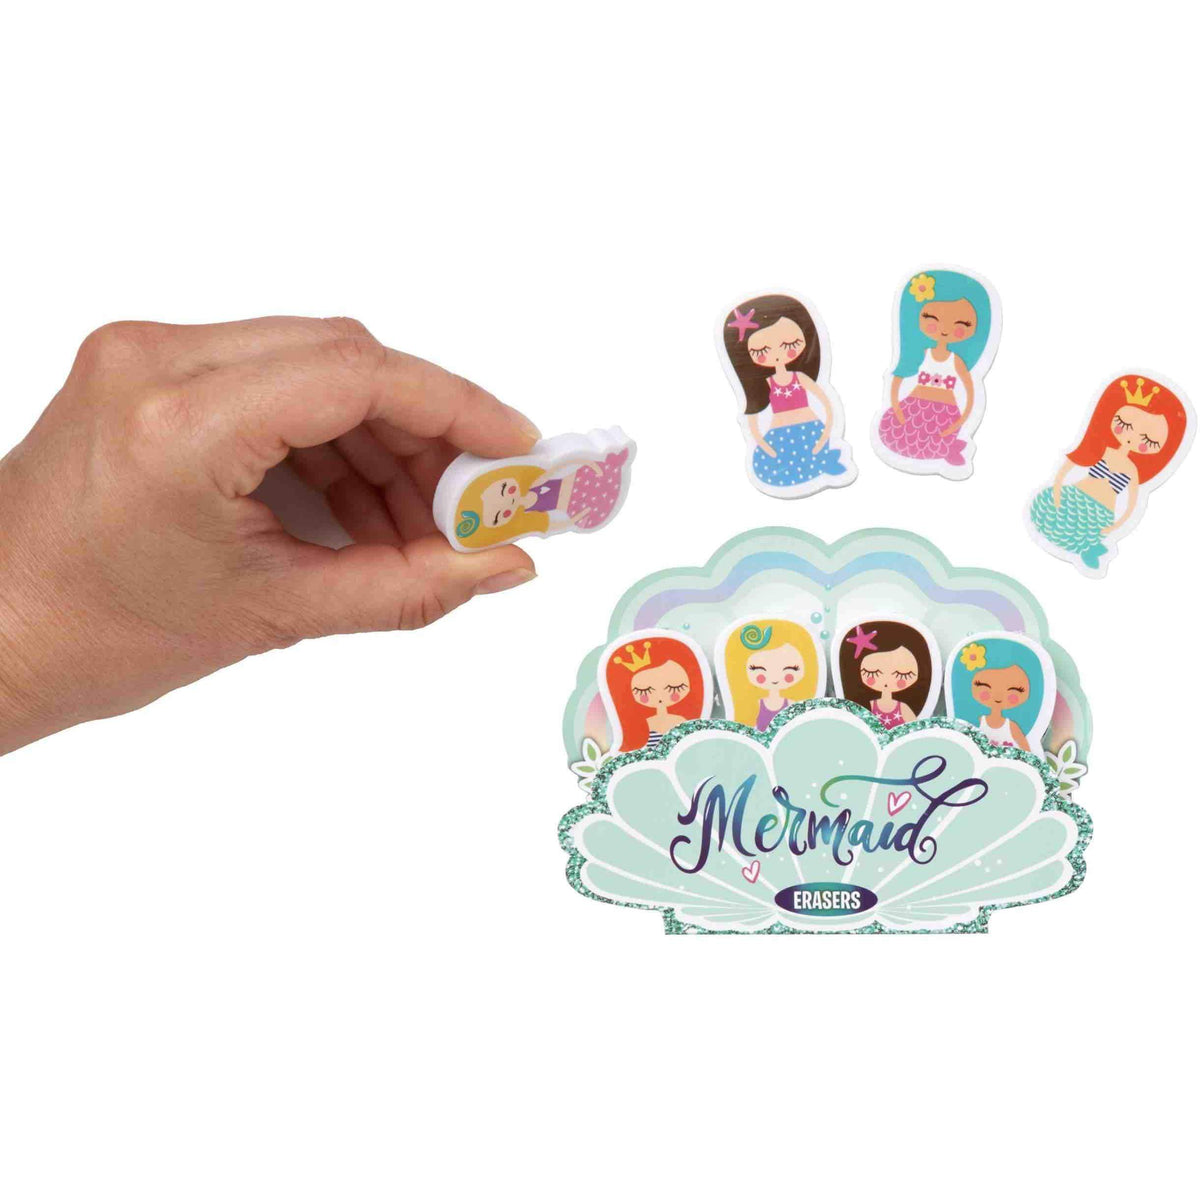 Mermaid Eraser Set